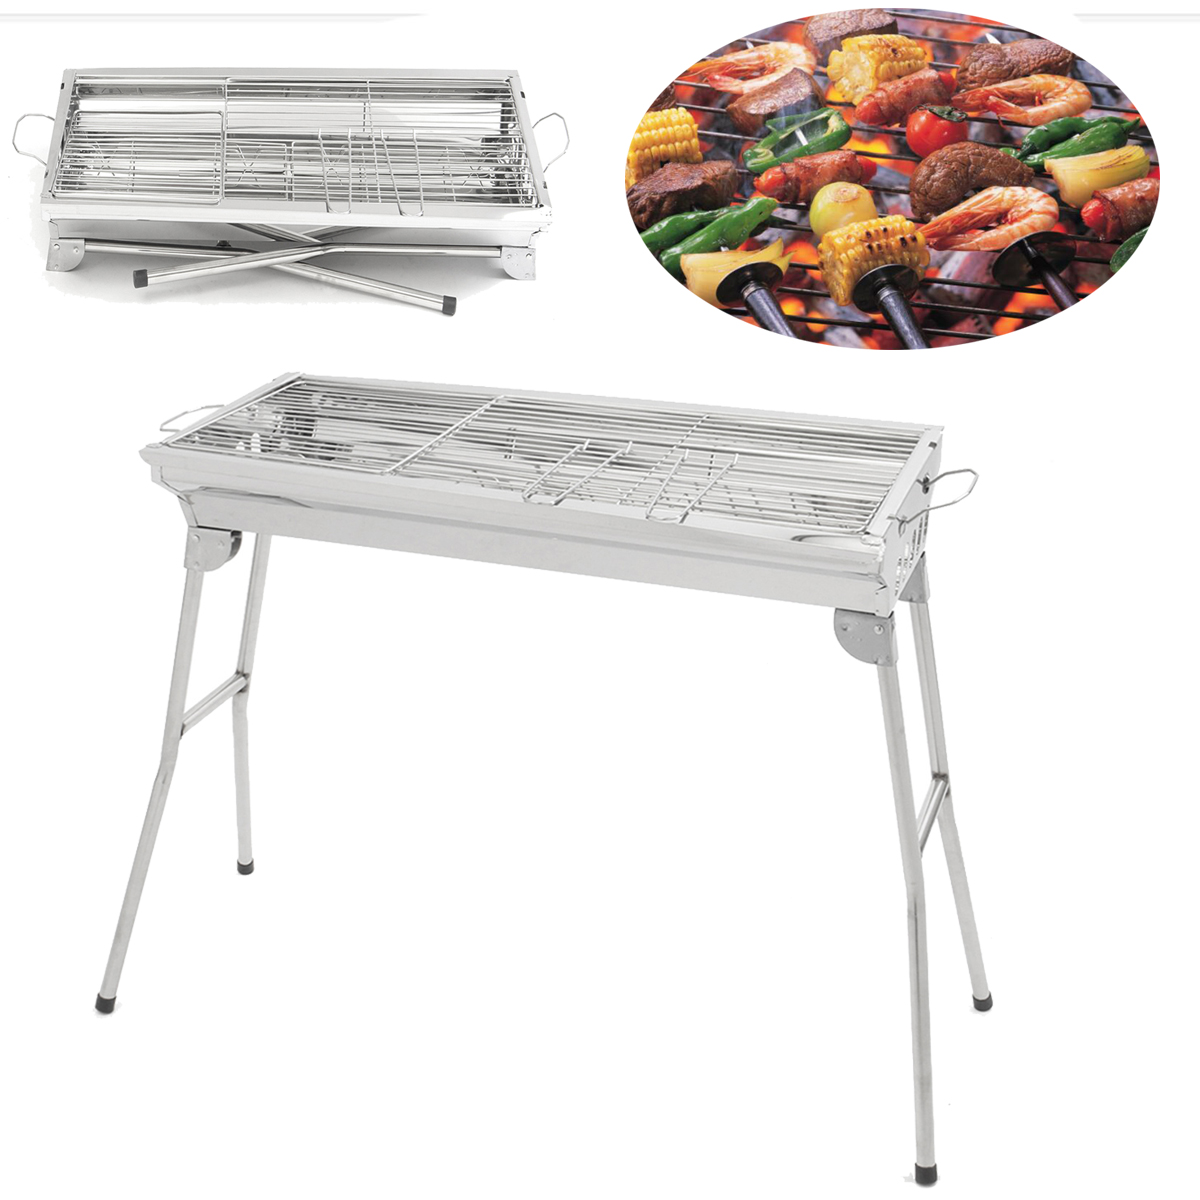 29''x14''x28'' BBQ Grill Portable Folding Stainless Steel Charcoal Gas Outdoor Picnic Camping